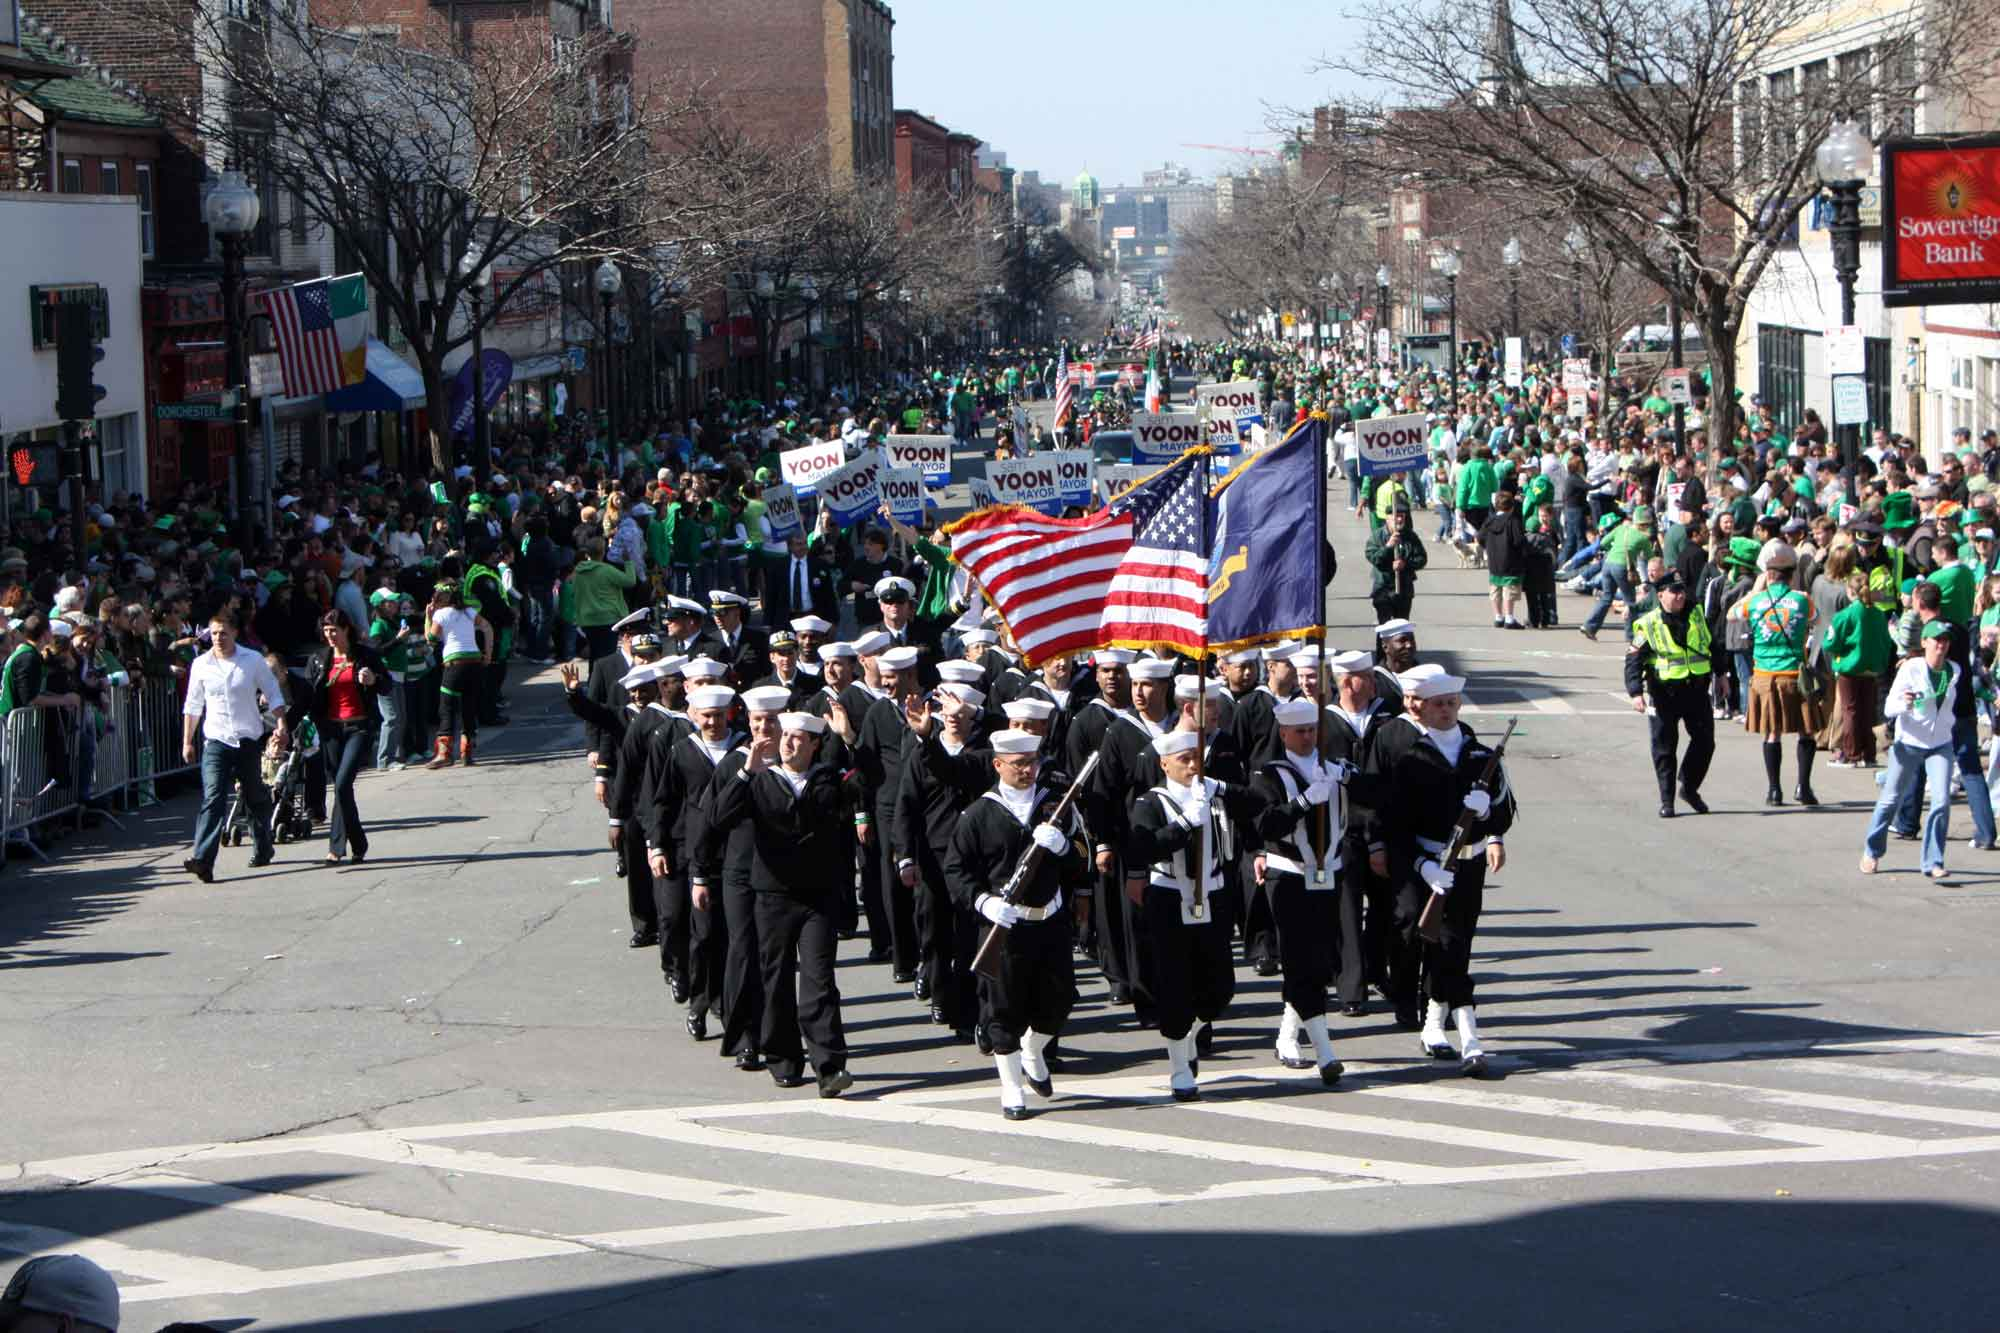 St. Patrick's Day - Boston